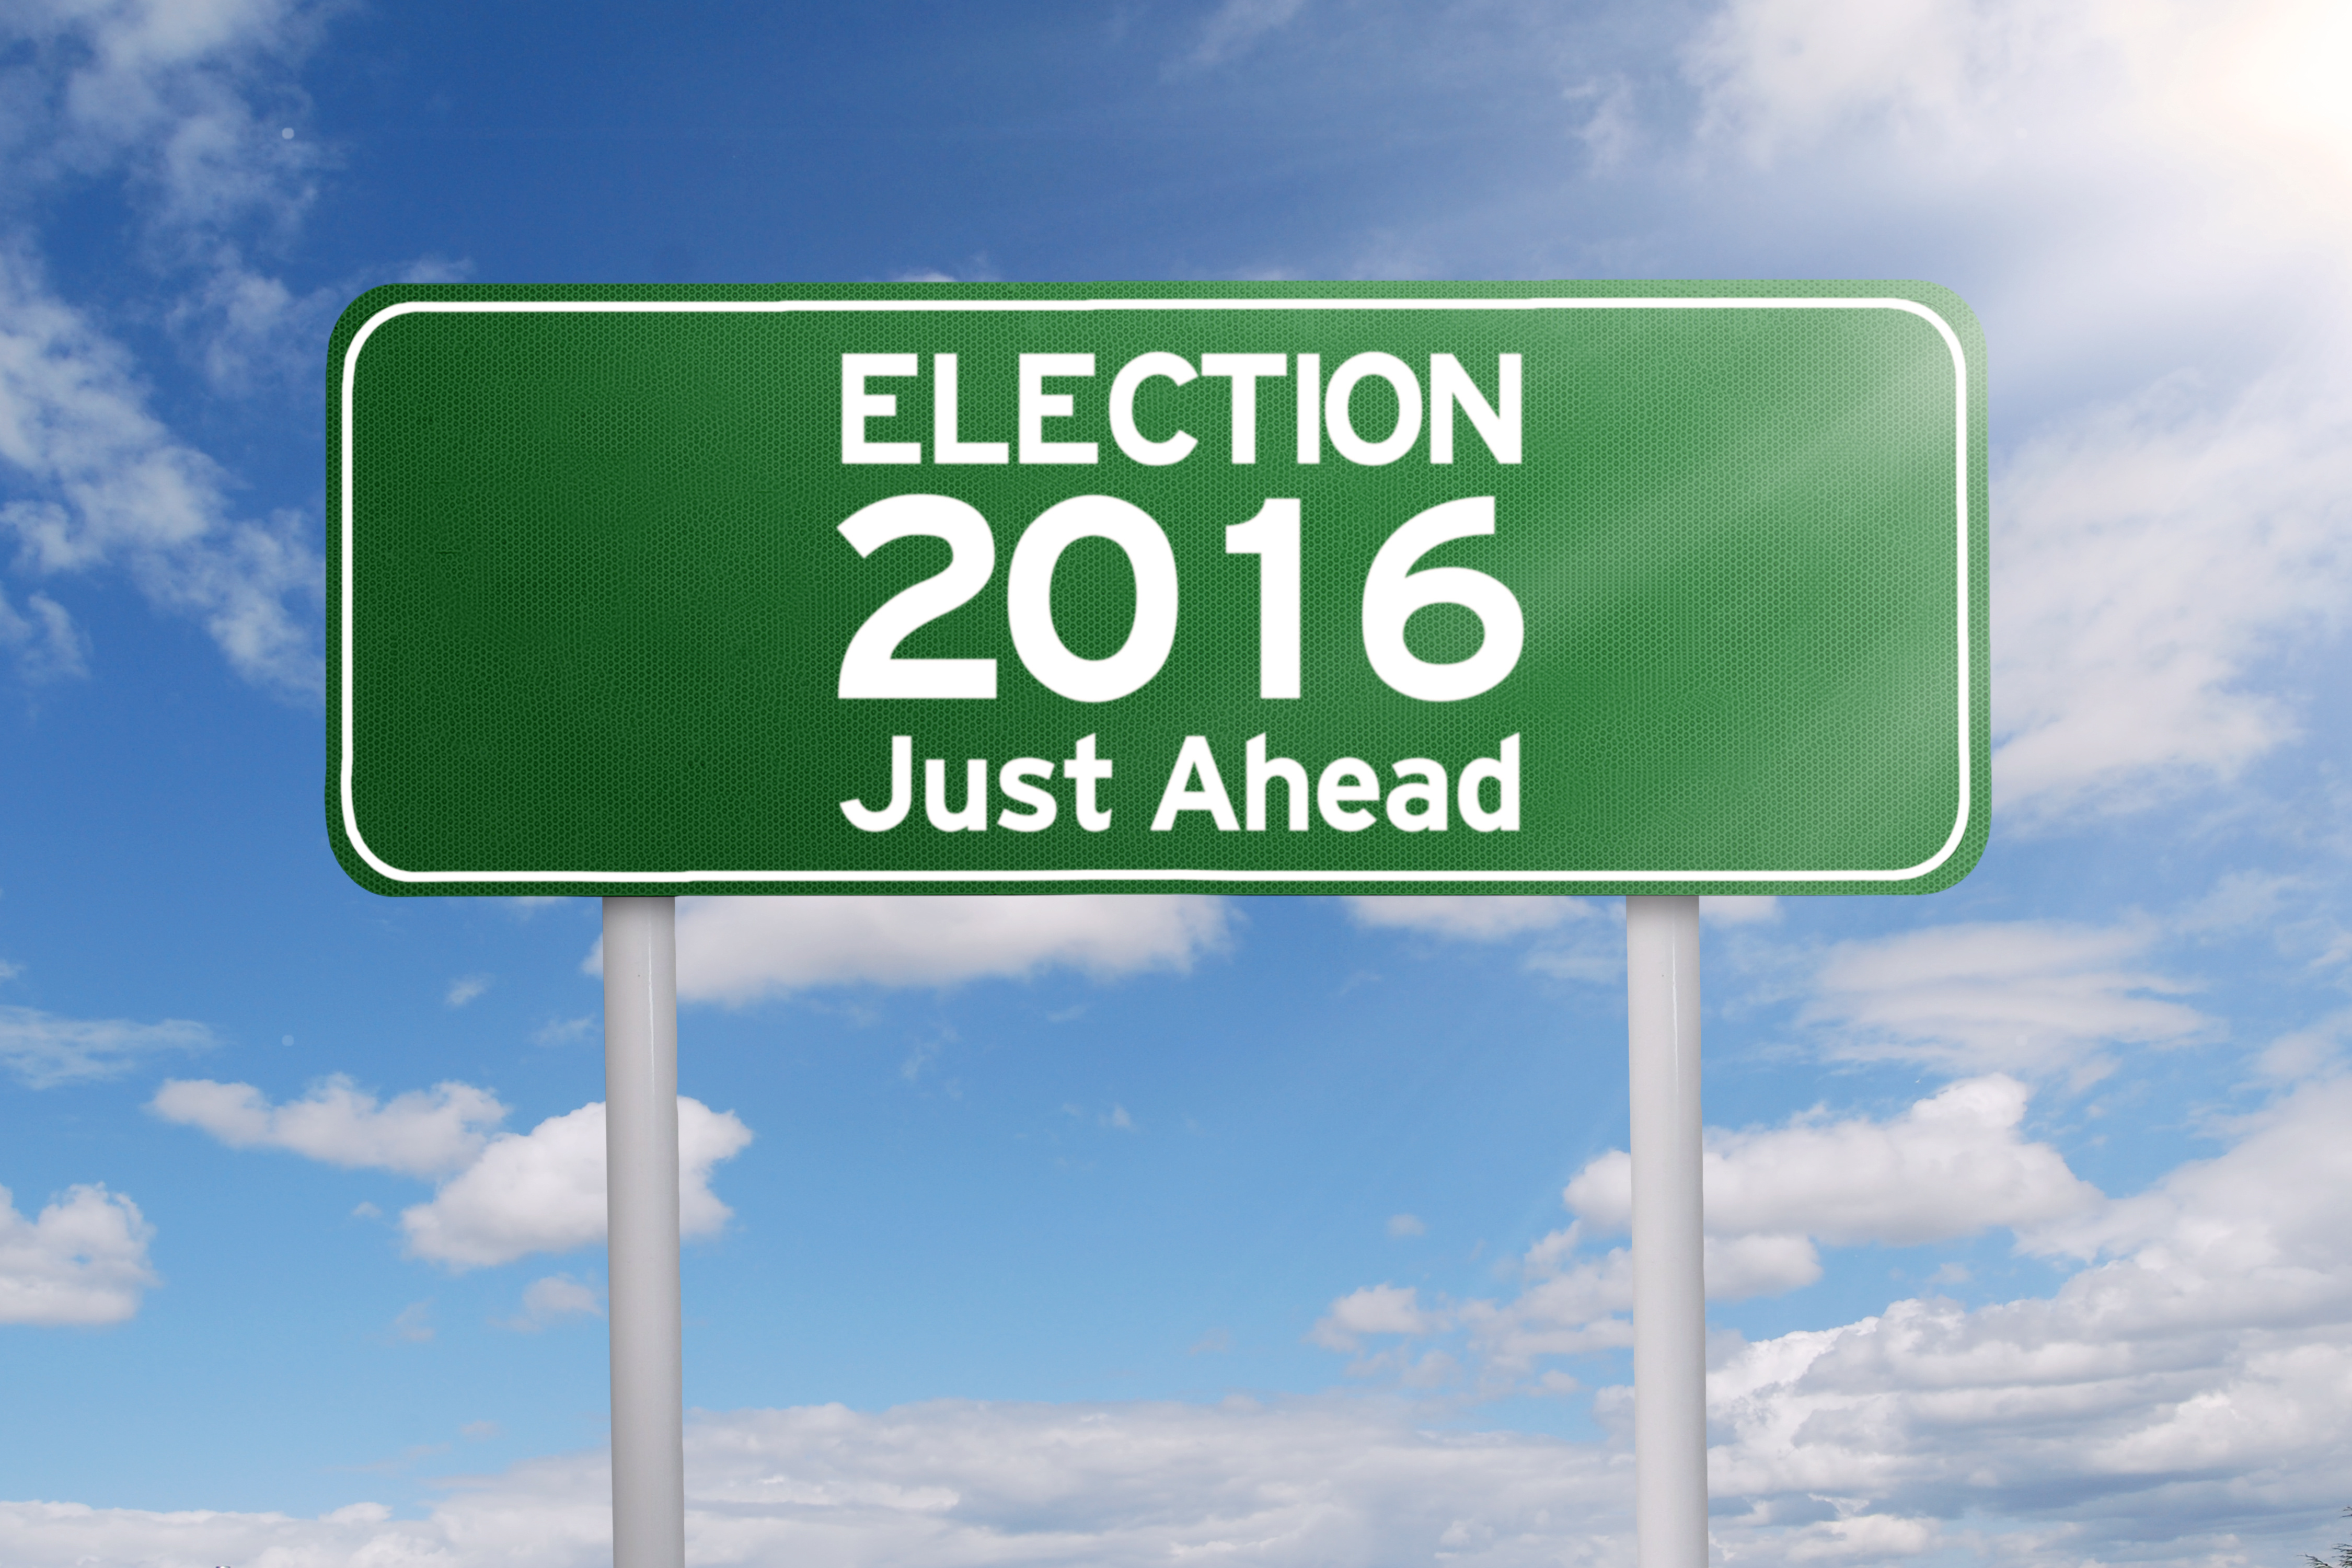 Image of a green signpost with a text of election 2016 just ahead under cloudy sky